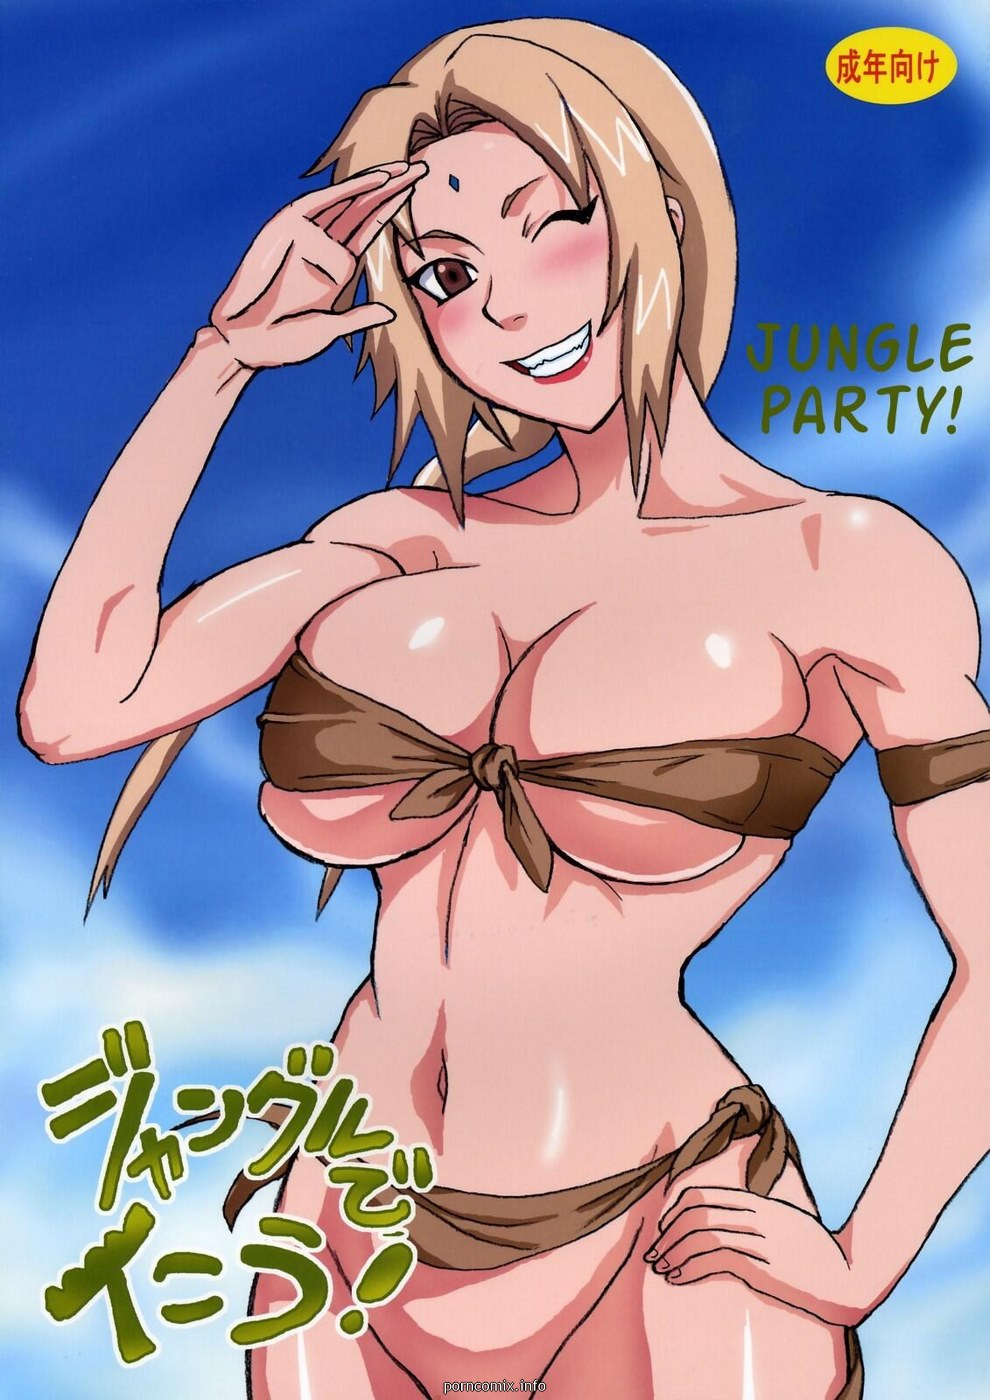 Naruto- Jungle Party porn comics 8 muses